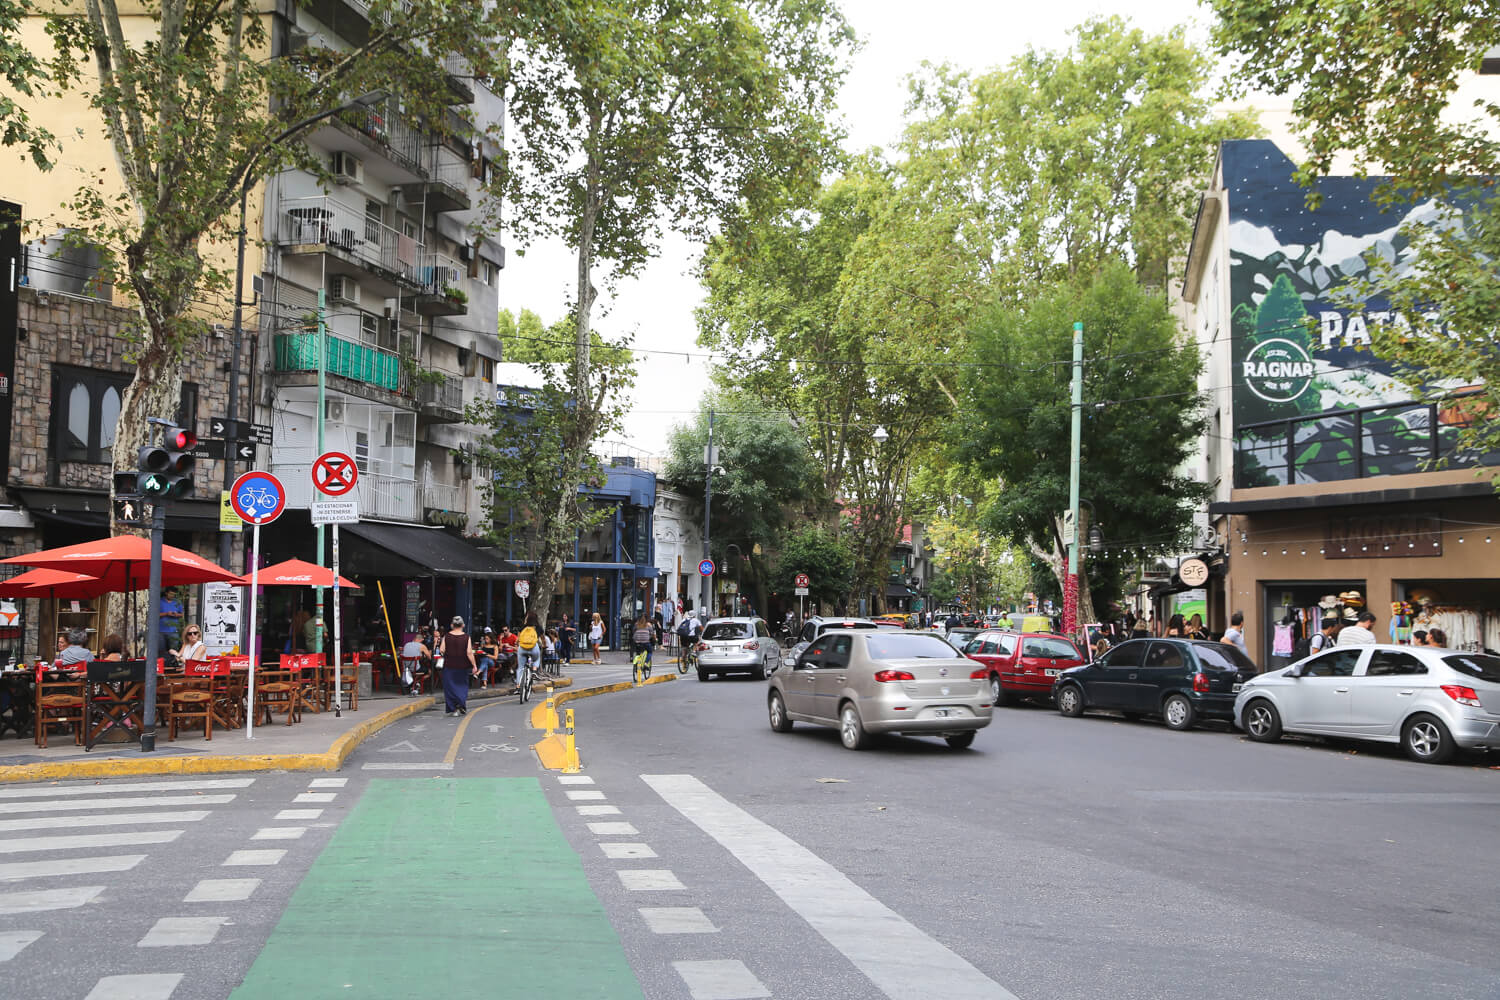 Plaza Serrano is surrounded by bars, cafes and shops selling products by independent local designers